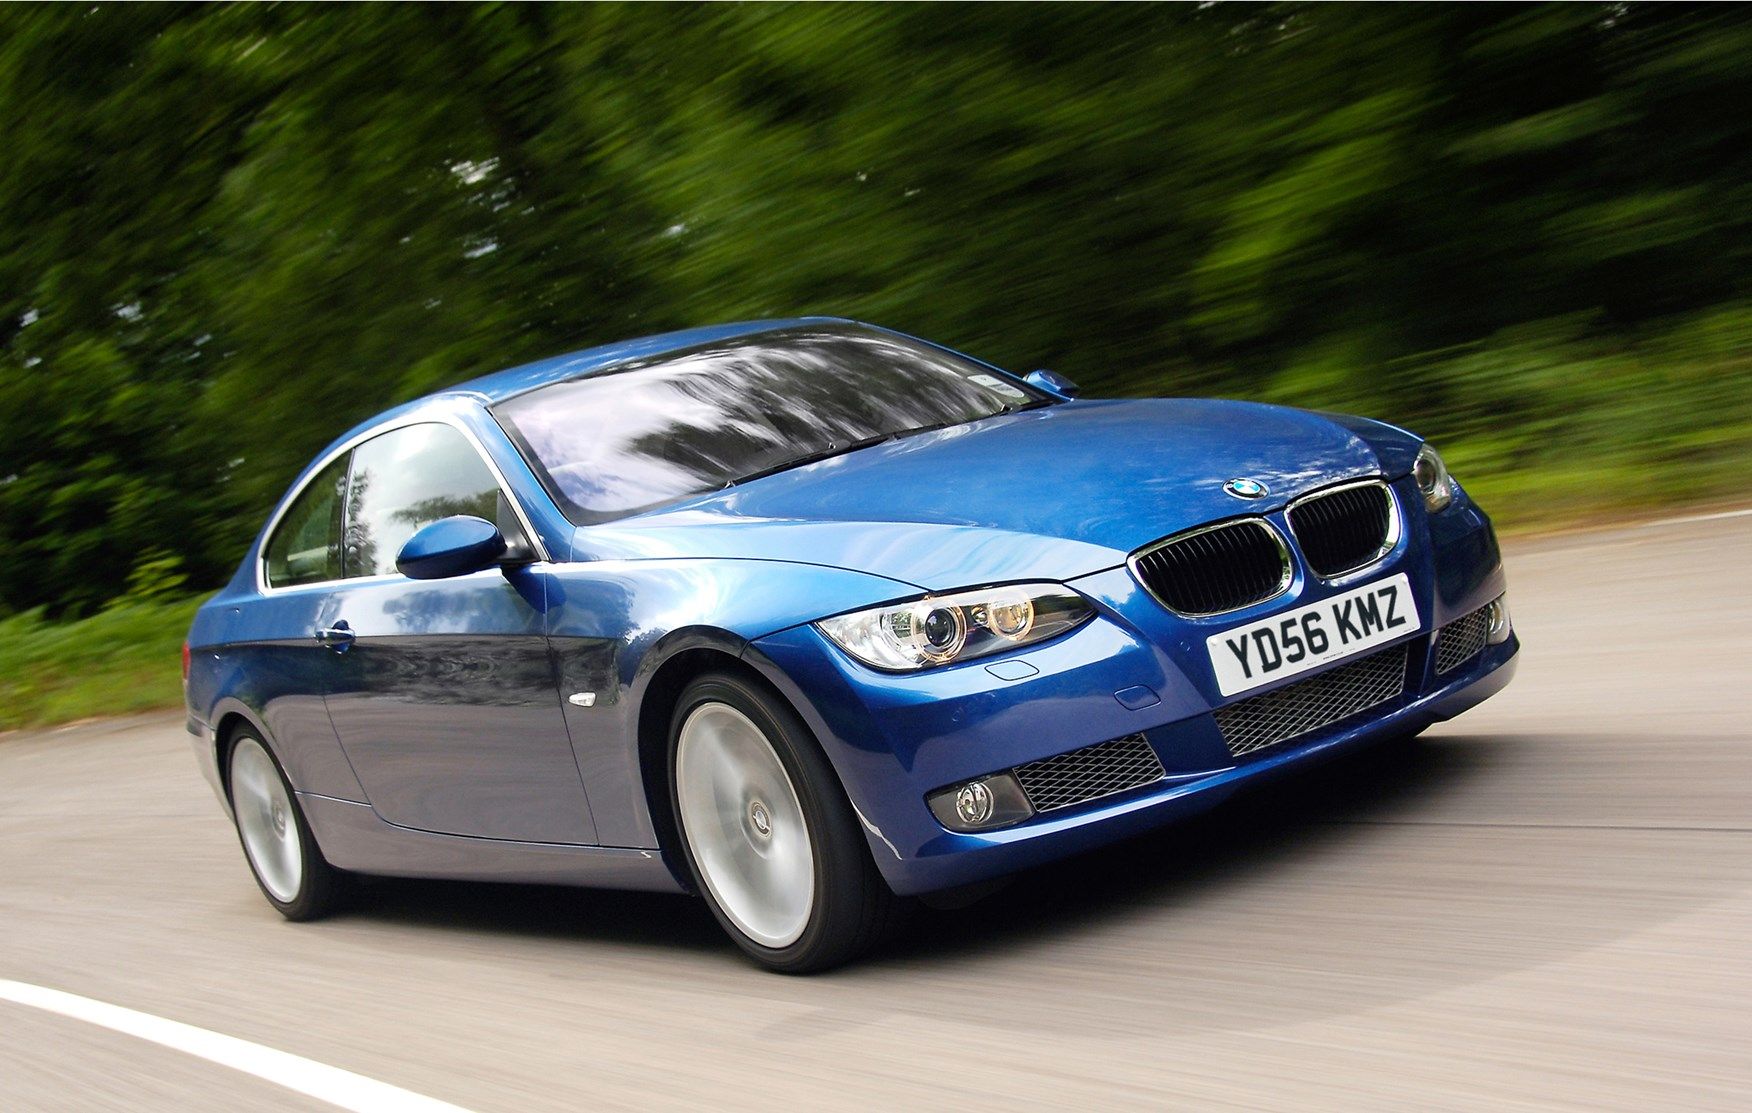 side coupe country year blue alamy images moving bmw photo model stock sale photos for view